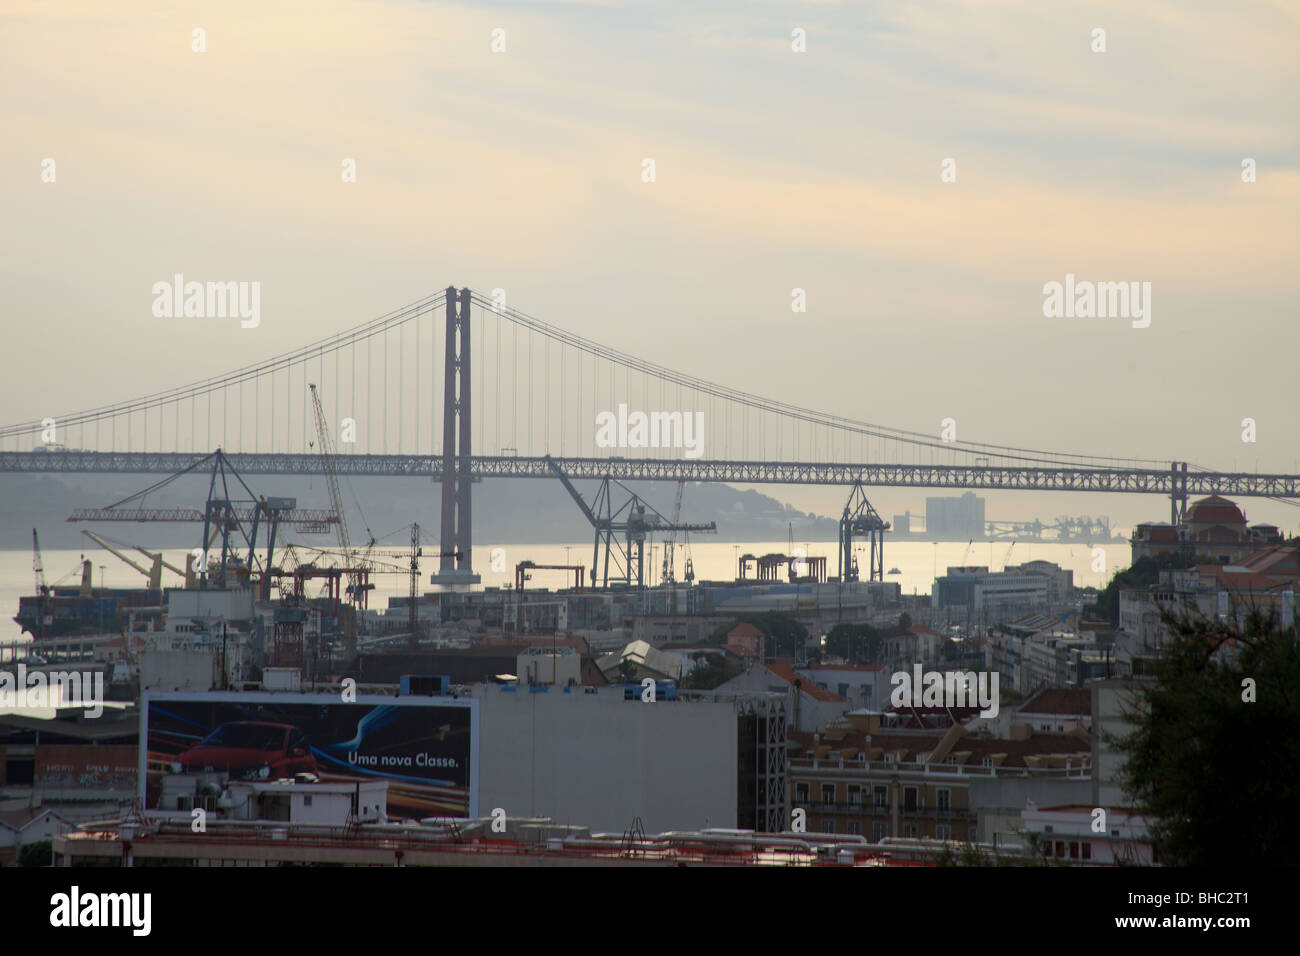 Viewpoint from Santa Catarina Miradouro overlooking the Tage river and the 25 April bridge - Stock Image